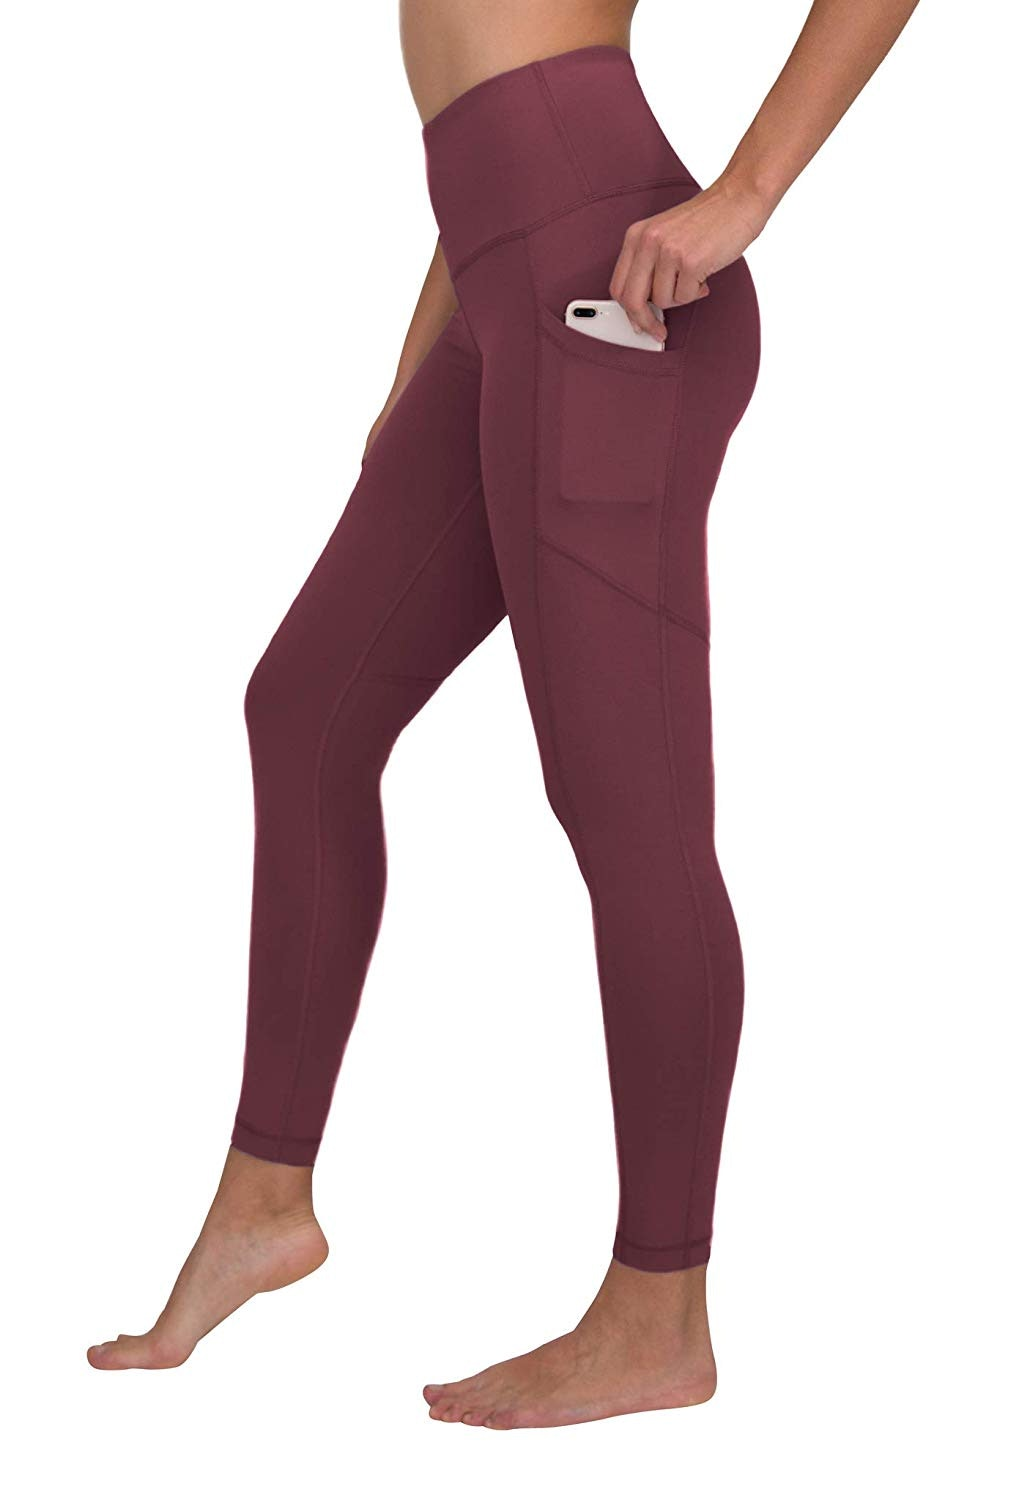 168a8959c 12 Workout Leggings With Pockets That Let You Take The Important Stuff With  You